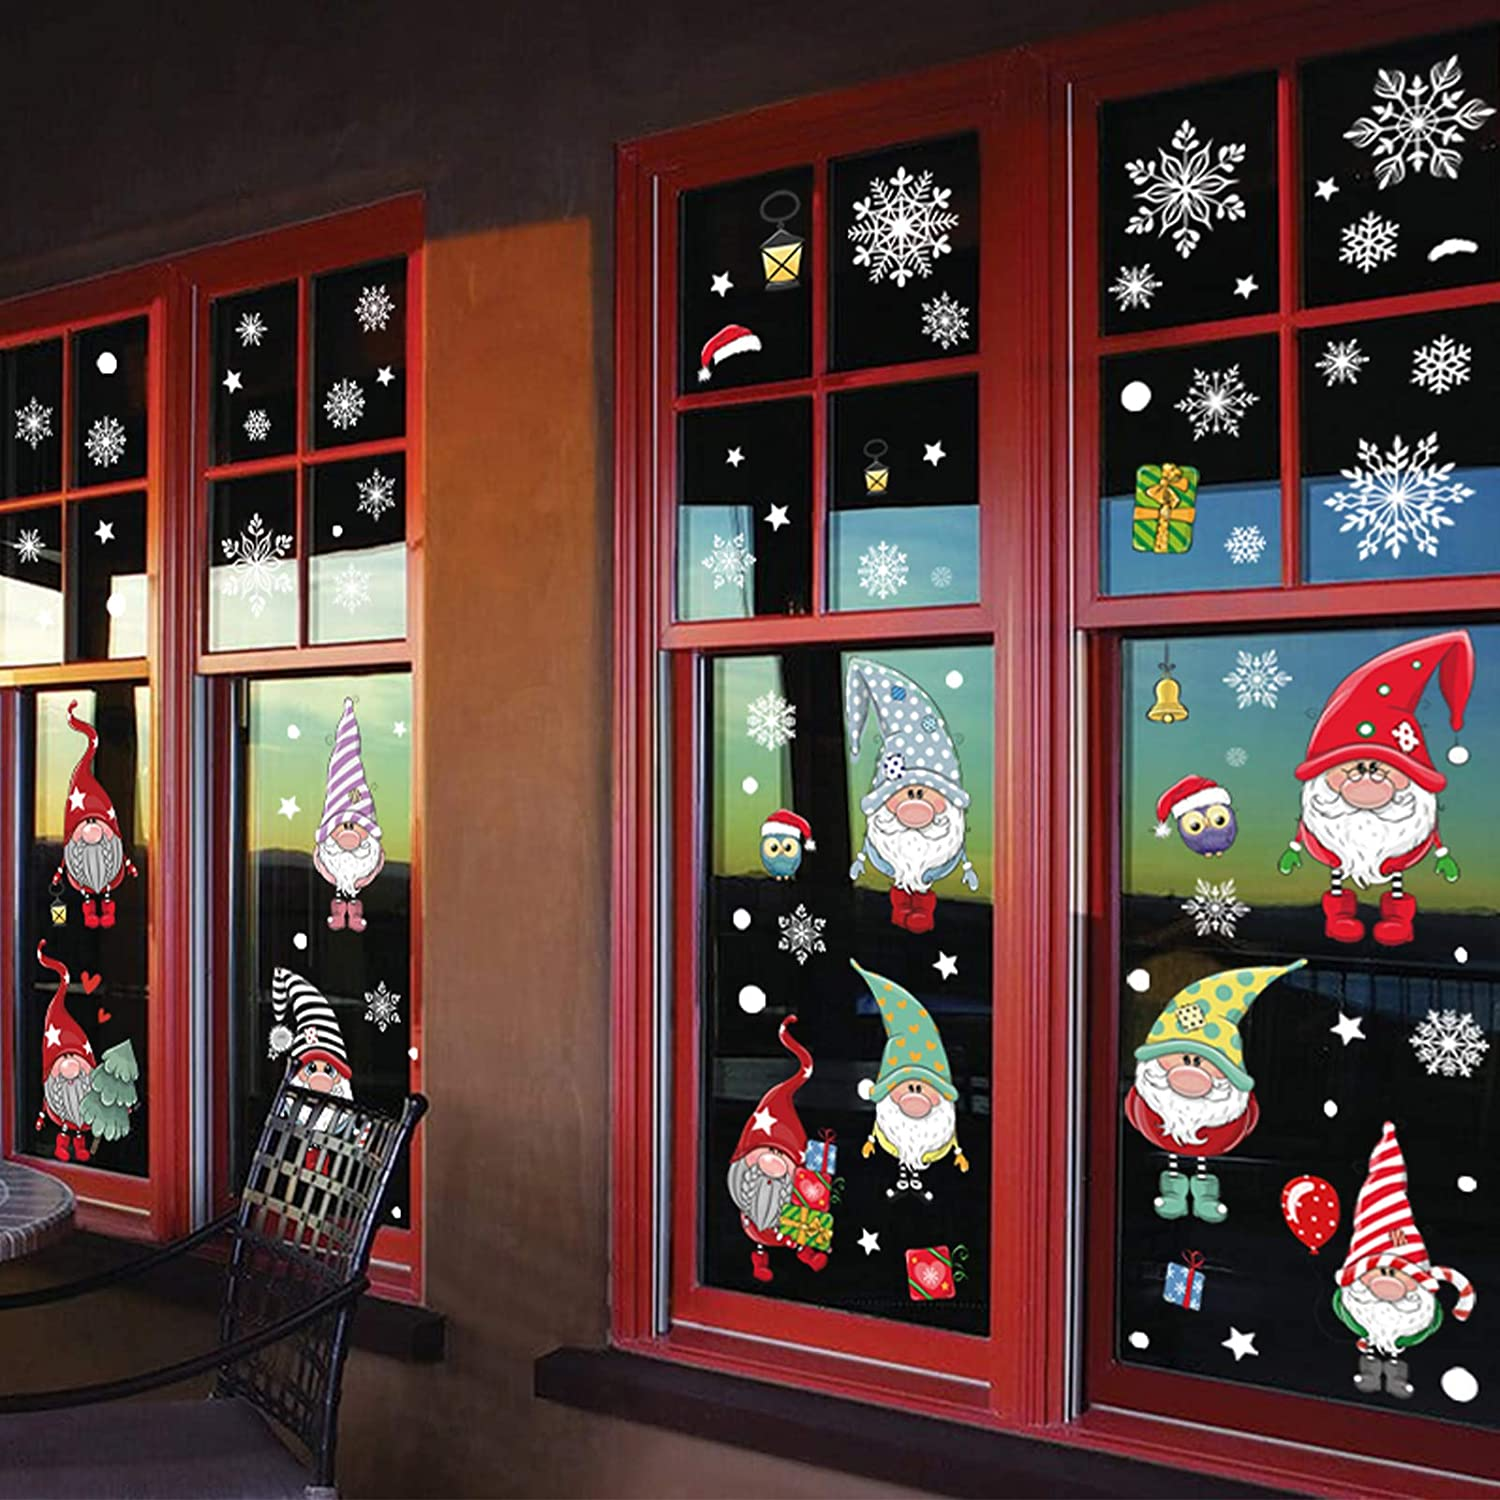 102 Pieces Christmas Gnome Window Clings Holiday Decorations Winter Xmas Elf Scandinavian Tomte Window Decals Holiday Christmas Party Supplies